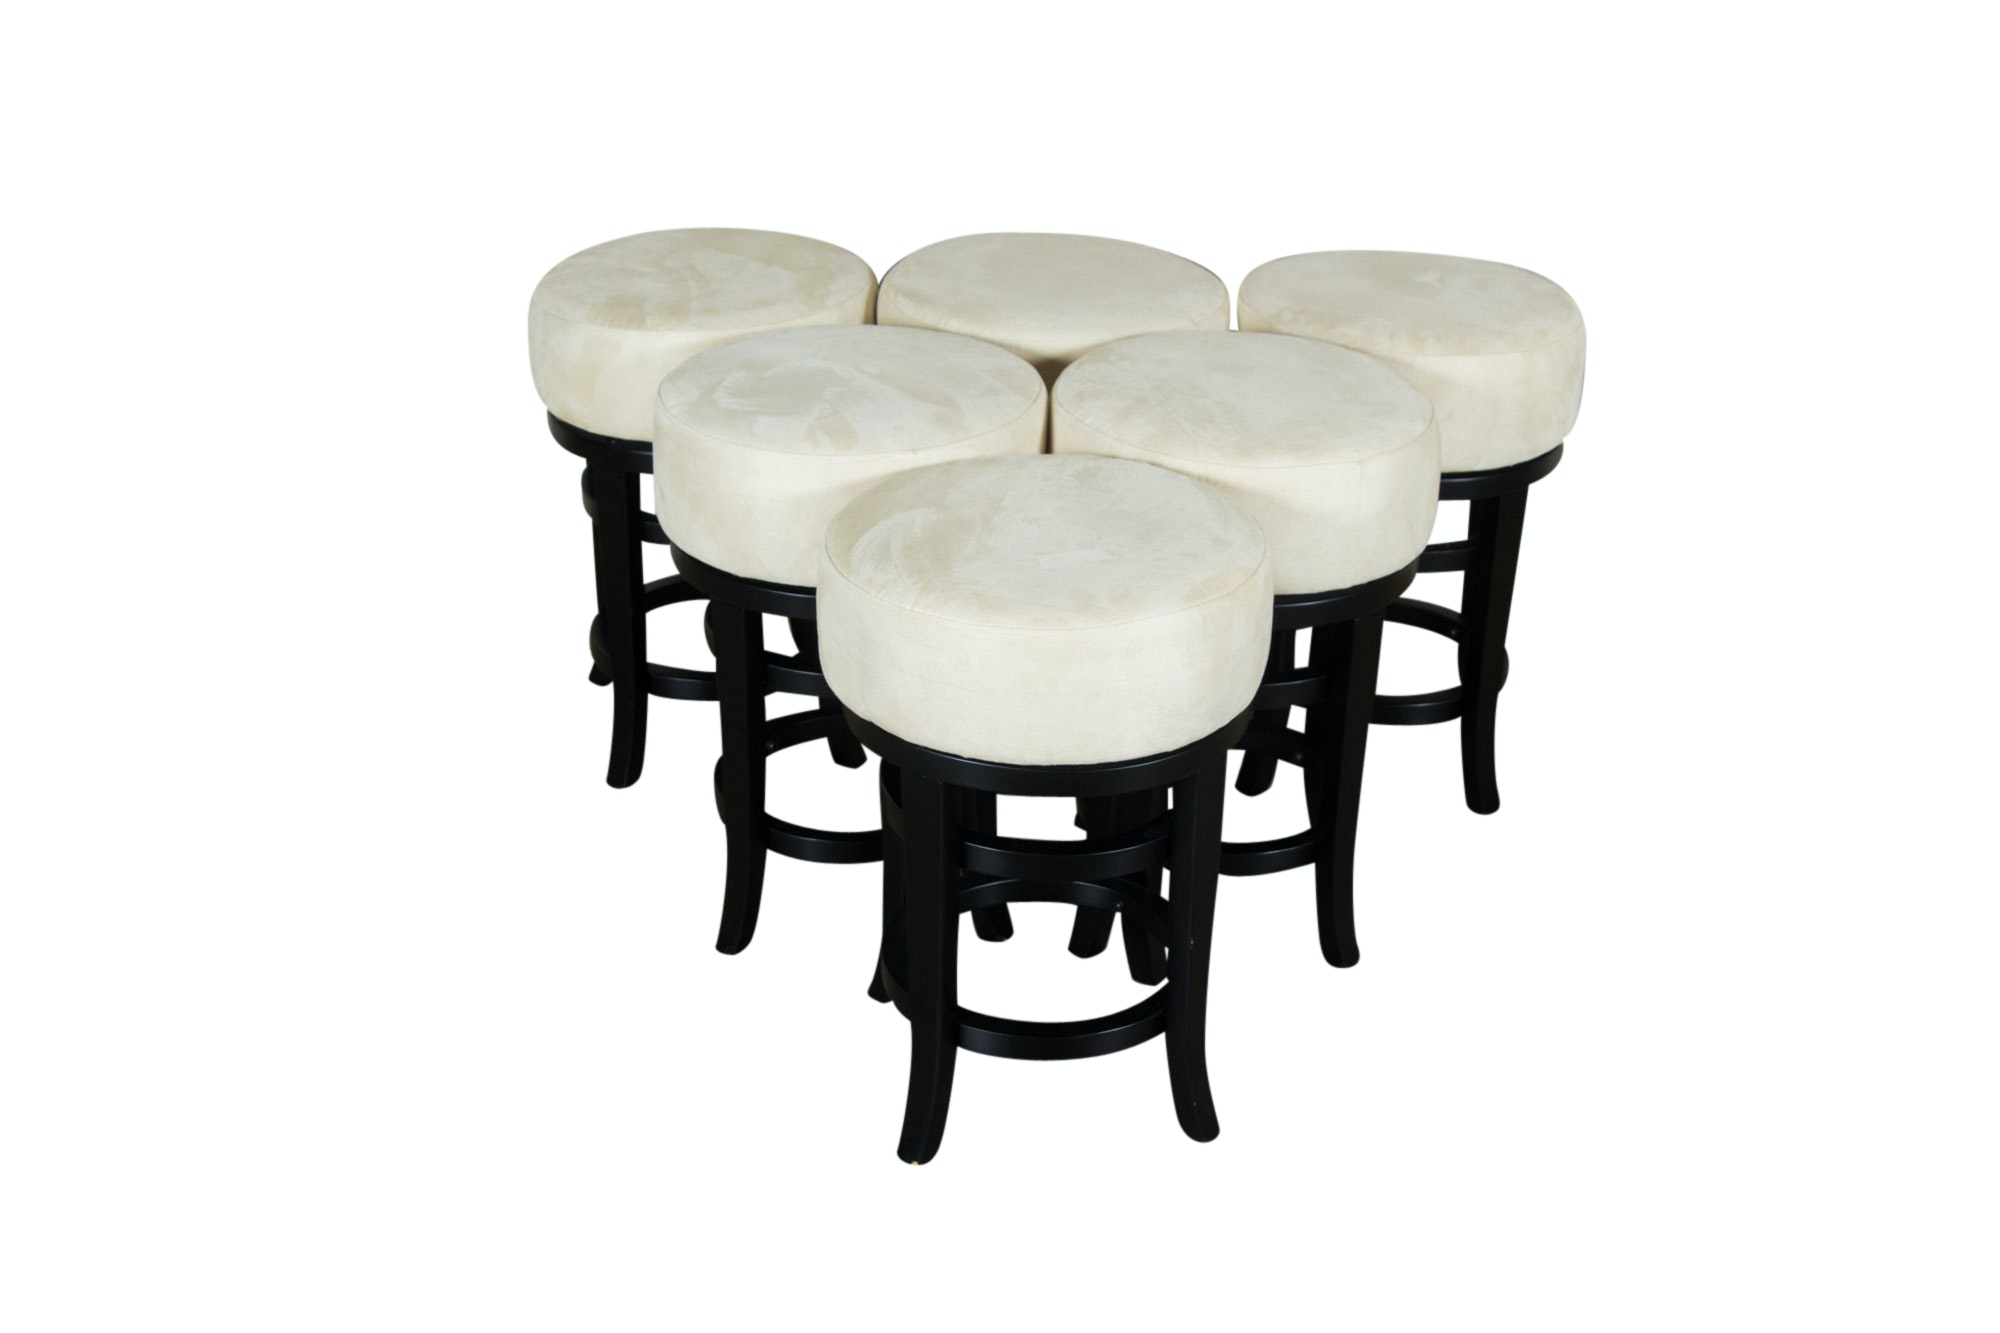 Six Cream Microfiber Upholstered Swivel Stools